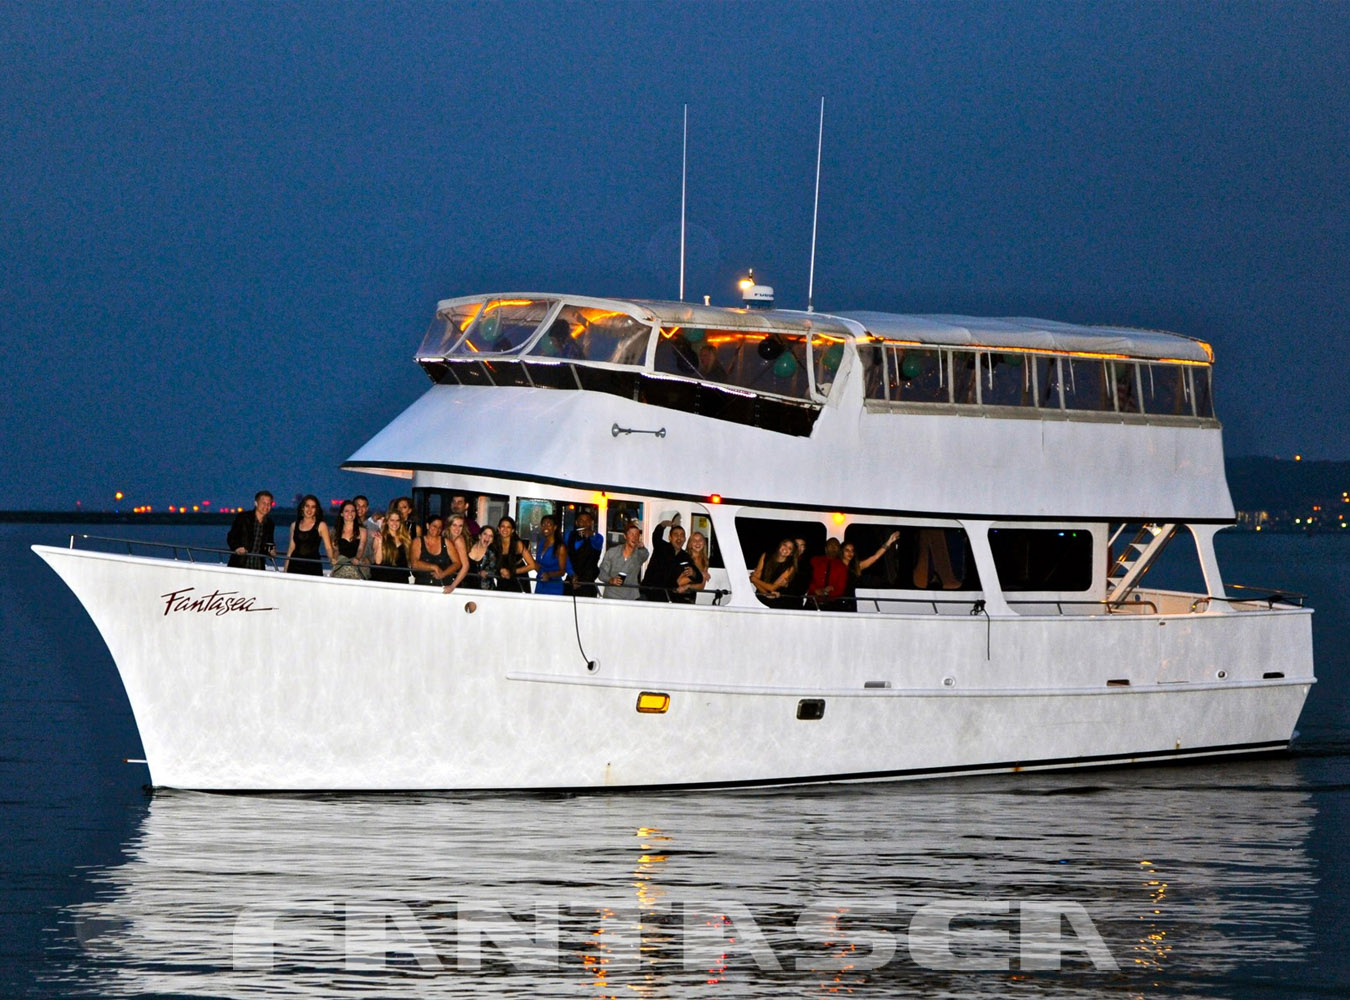 Yacht Fantasea Charters is a Great Venue for a San Diego Bay or